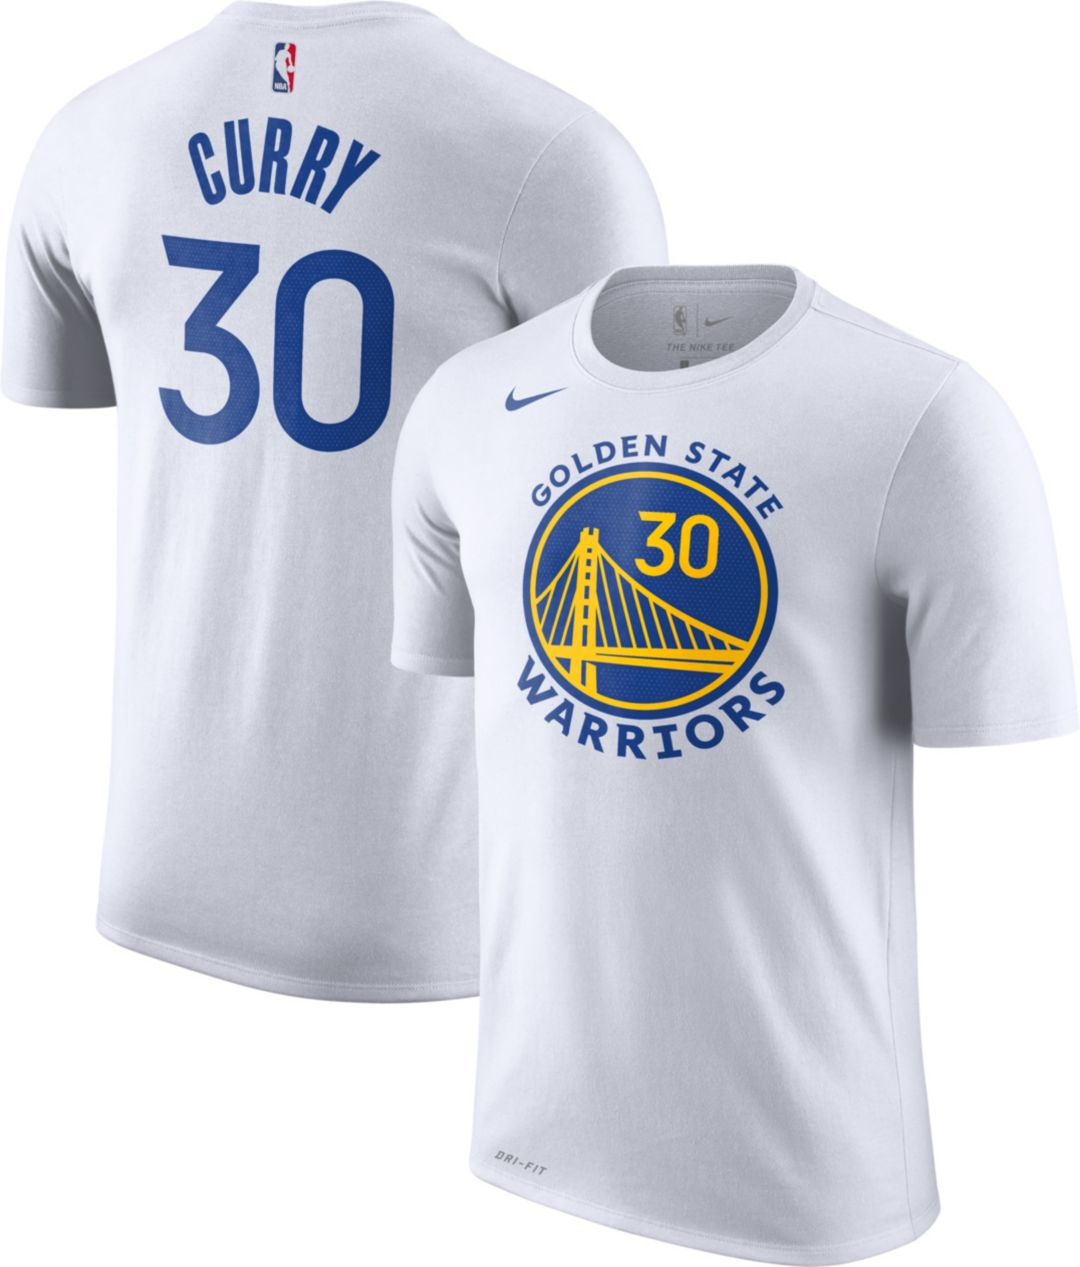 outlet store 6eb95 9473d Nike Youth Golden State Warriors Steph Curry #30 Dri-FIT White T-Shirt